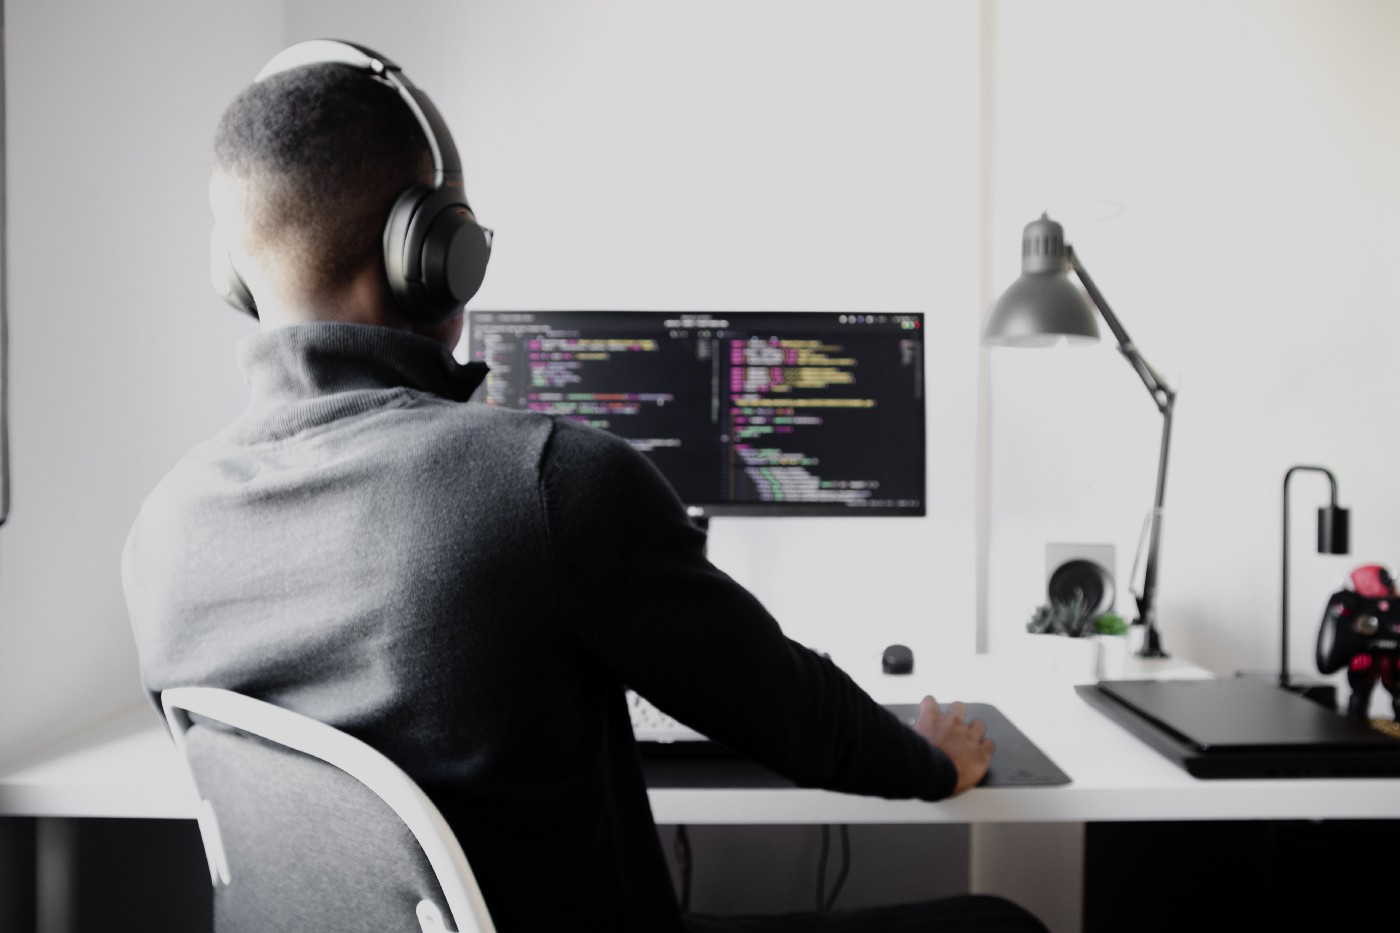 Man in black long sleeve shirt wearing black headphones, sitting on a chair, looking at a computer screen with code editor open